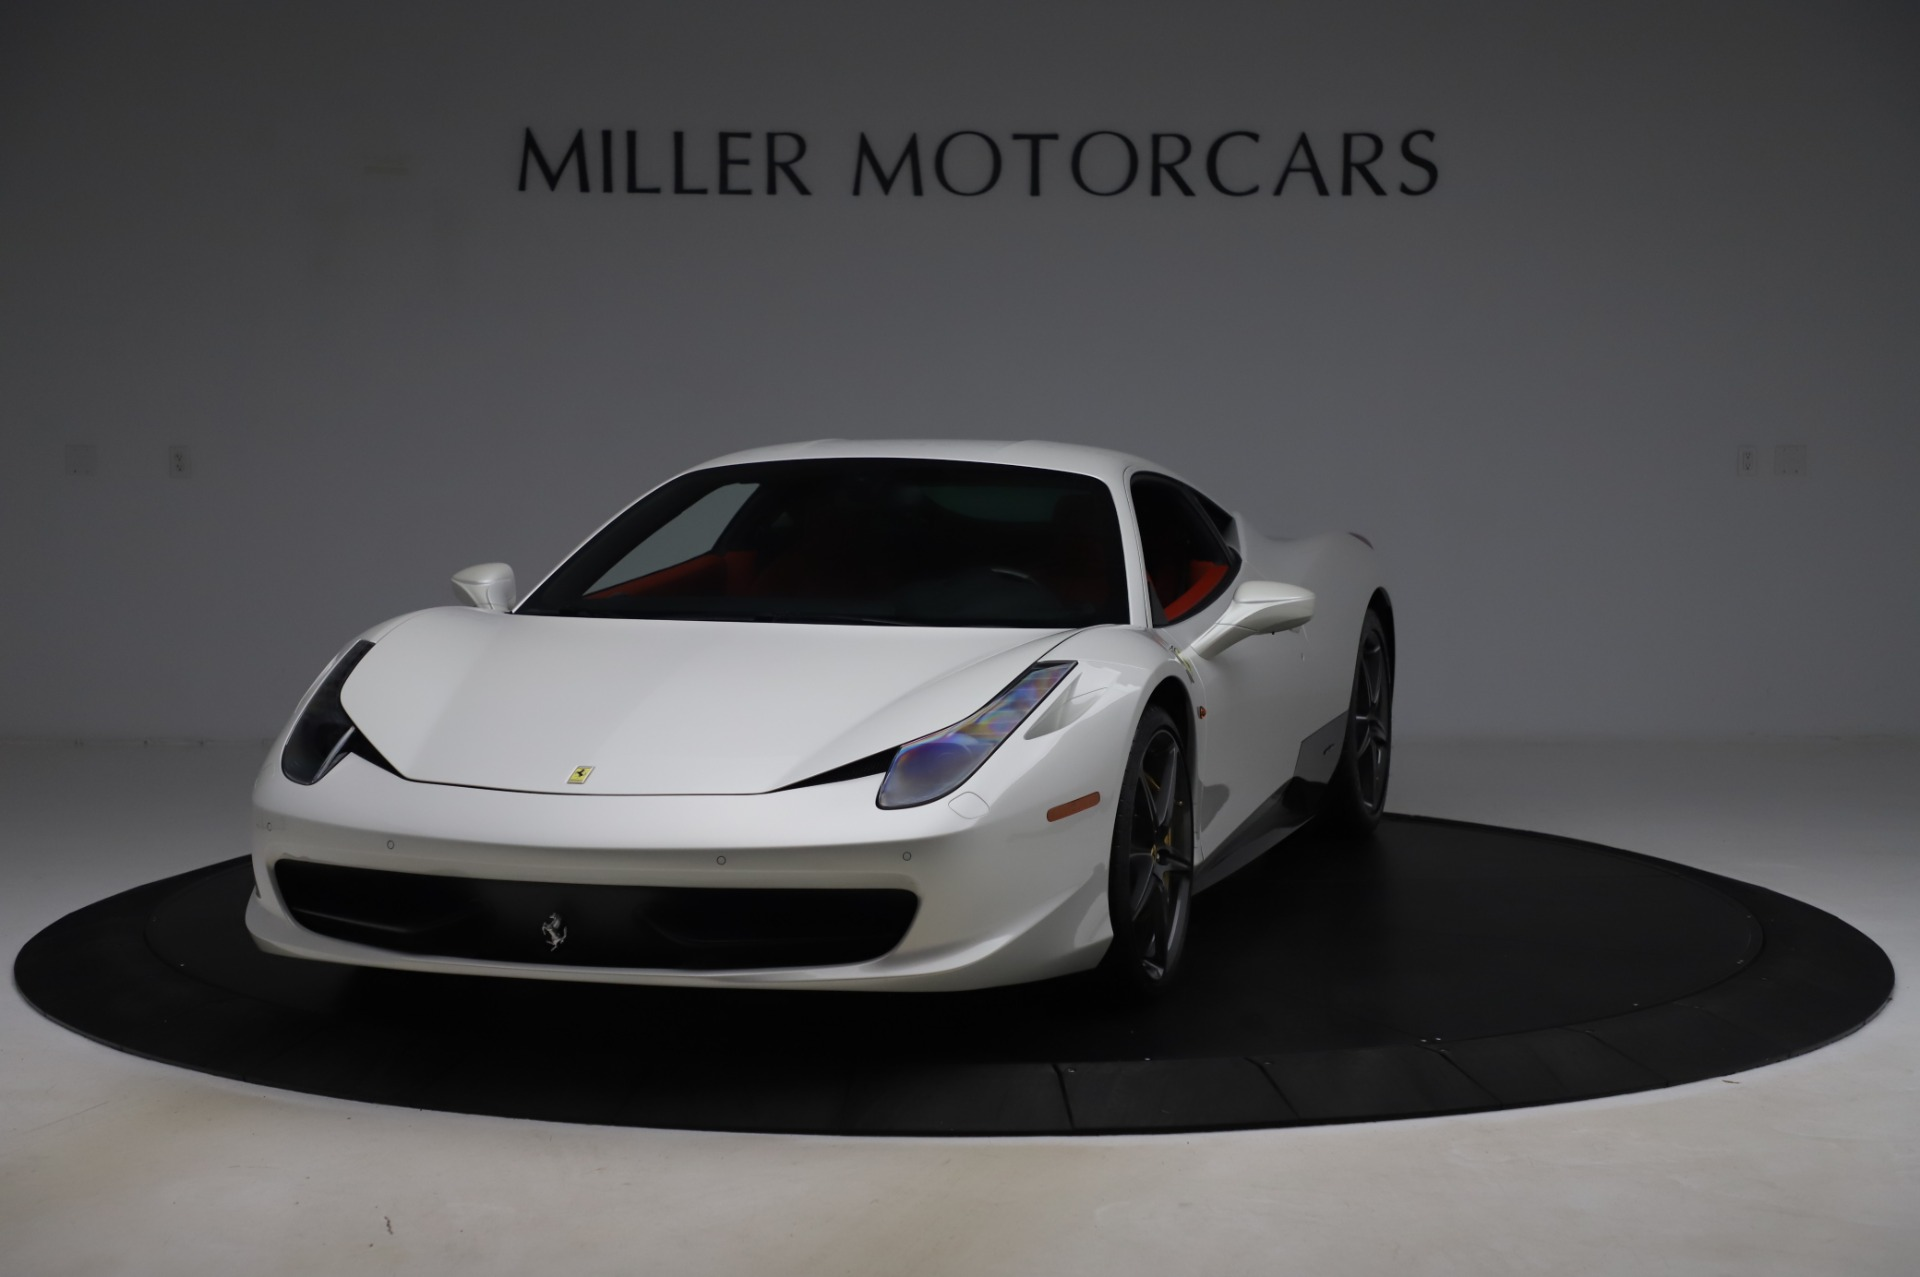 Used 2013 Ferrari 458 Italia for sale Sold at Bentley Greenwich in Greenwich CT 06830 1